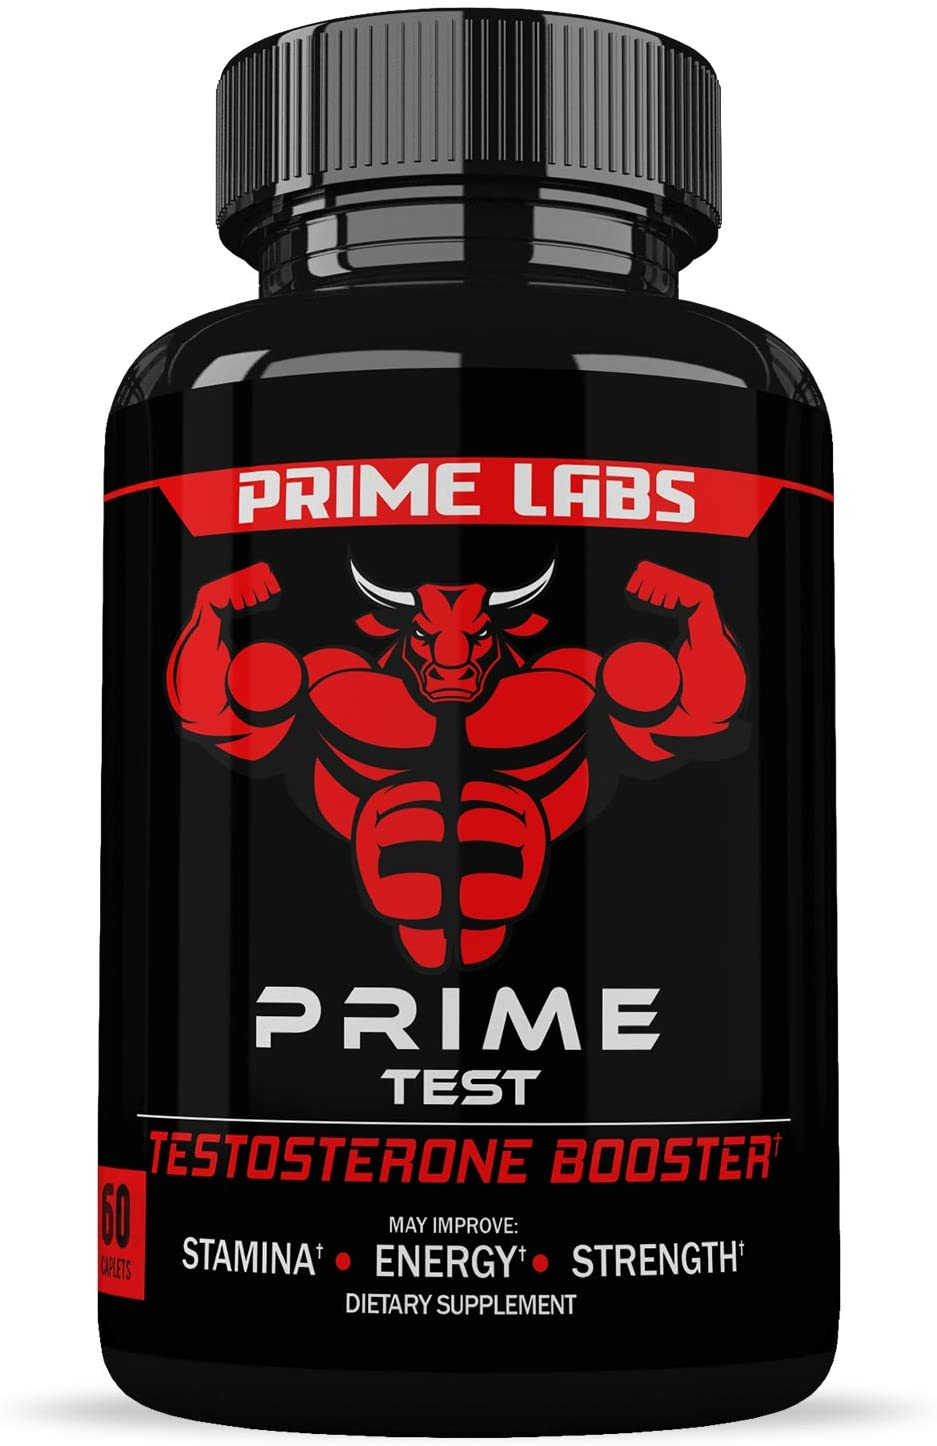 Prime Labs - Men's Testosterone Booster